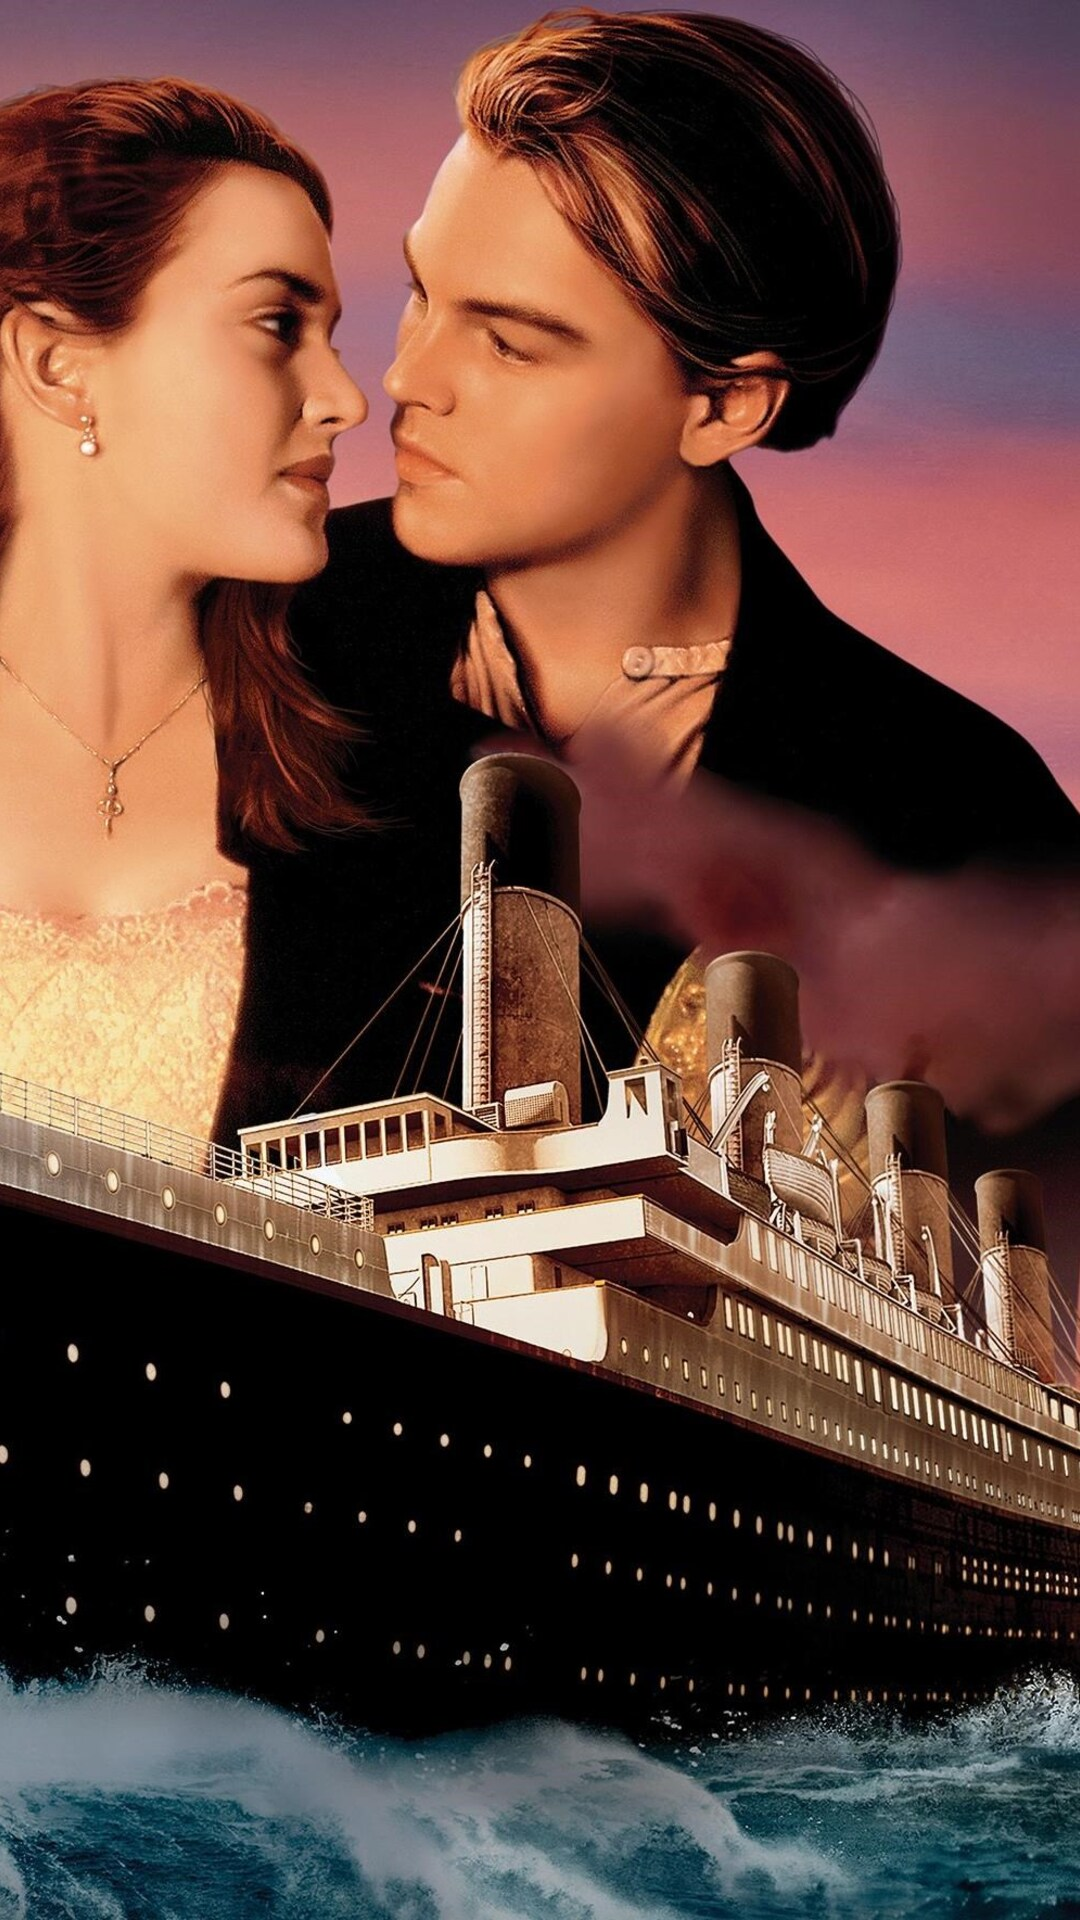 1080x1920 titanic movie full hd iphone 7,6s,6 plus, pixel xl ,one